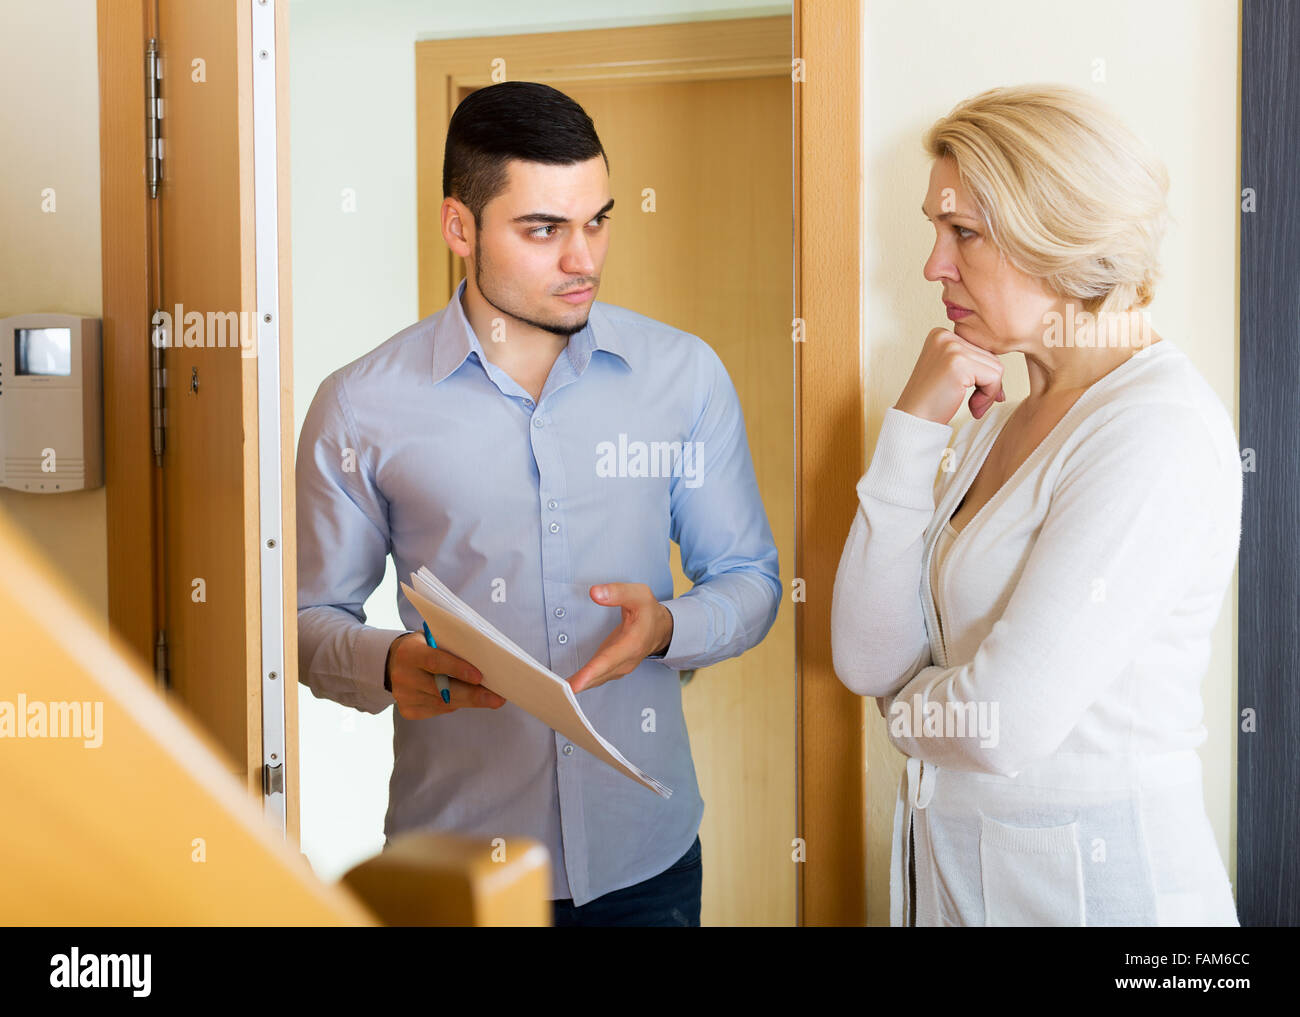 Collector is trying to get the arrears from mature unhappy woman at home door Stock Photo